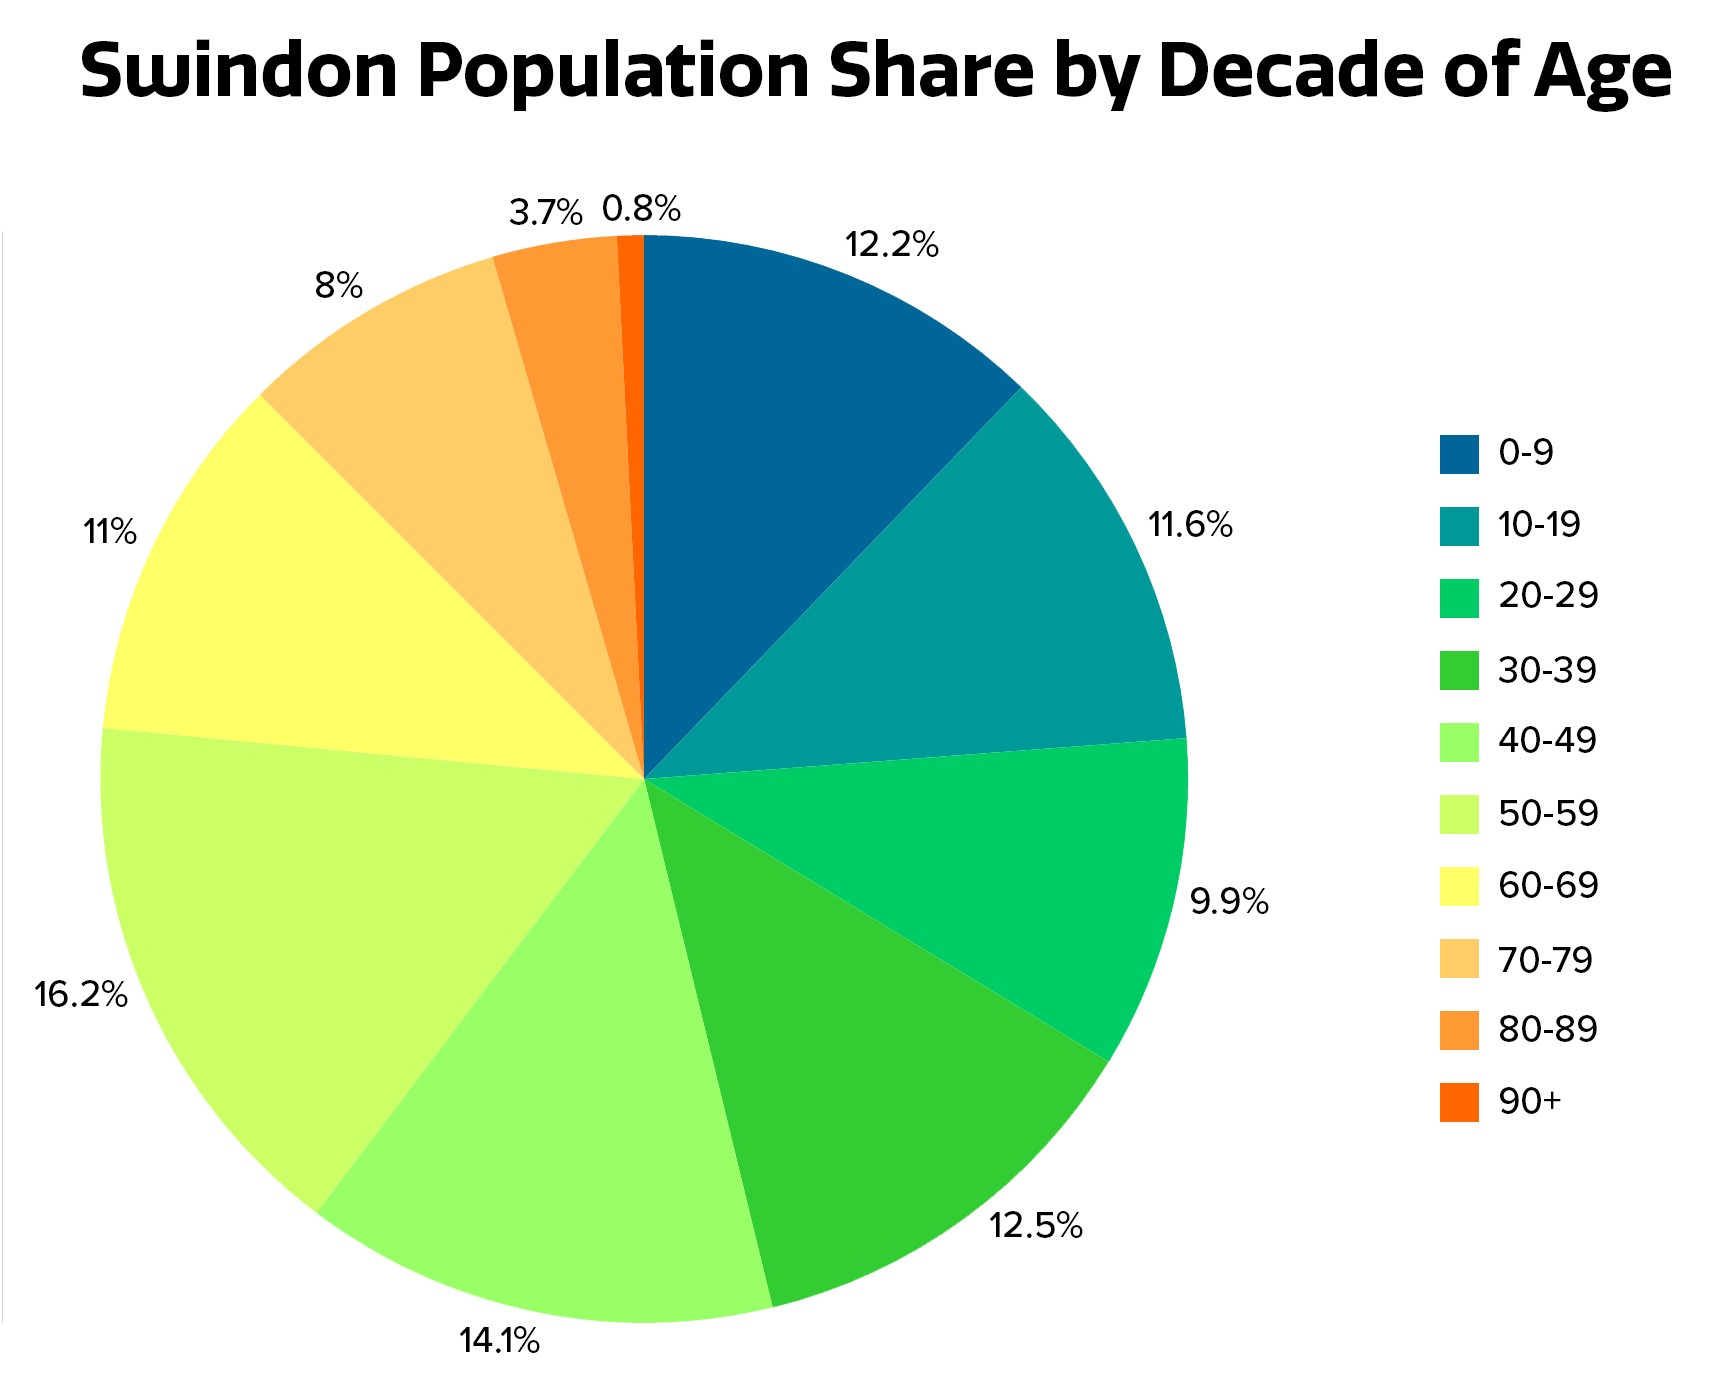 population share of swindon